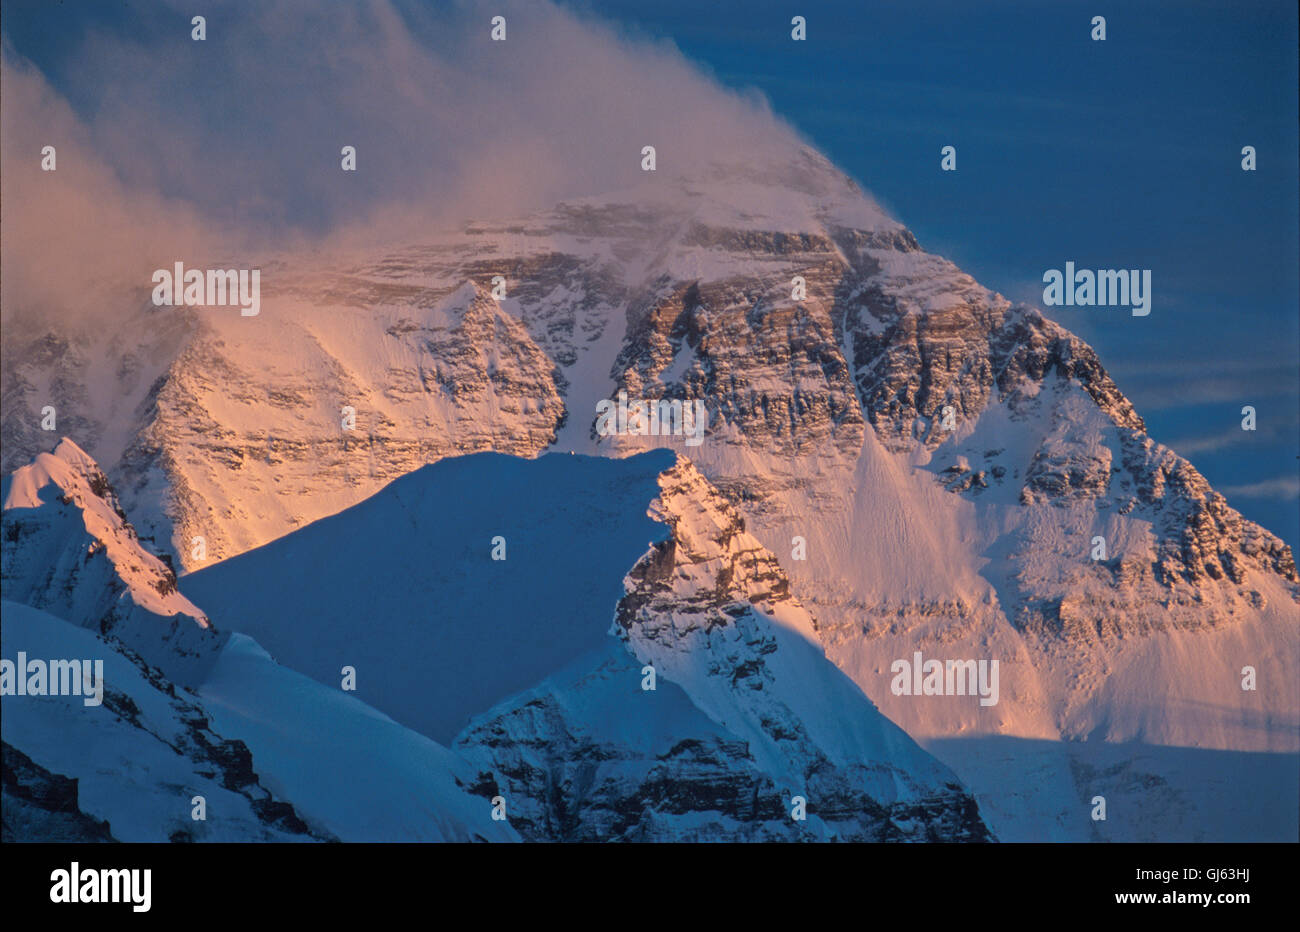 Mount Everest (8,848 metres ) looming up at the end of the valley viewed from Rongbuk Monastery at sunset. The views - Stock Image